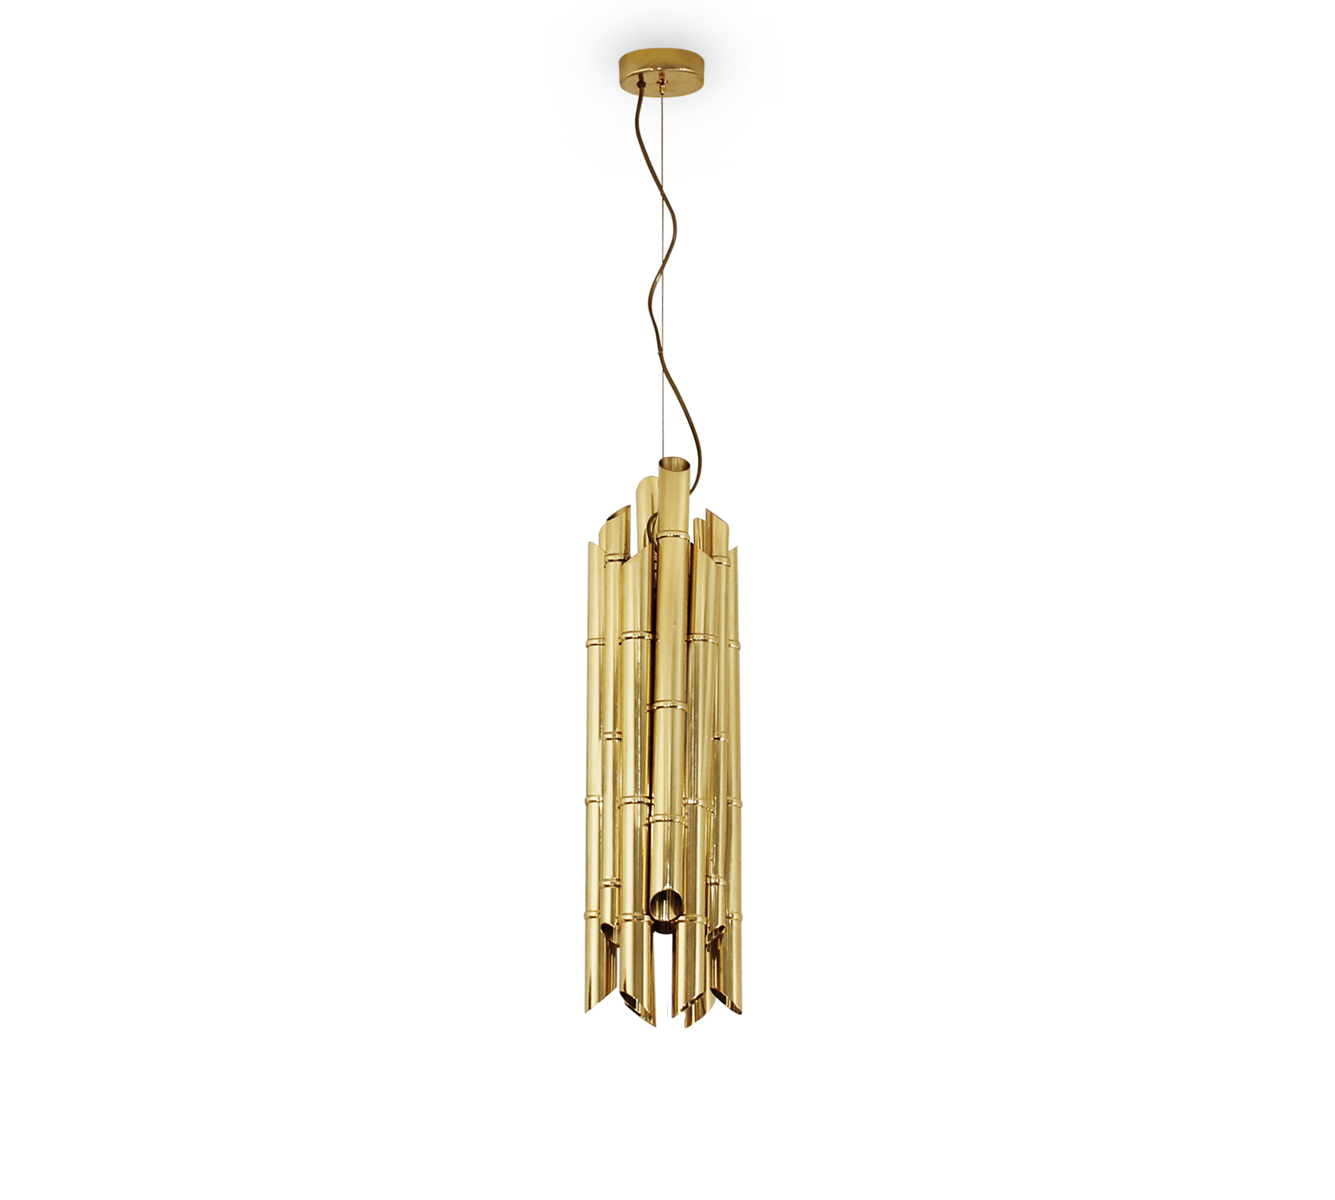 14 Pendant Lamps For Your Home That We Are Crazy About! pendant lamps 14 Pendant Lamps For Your Home That We Are Crazy About! 14 2